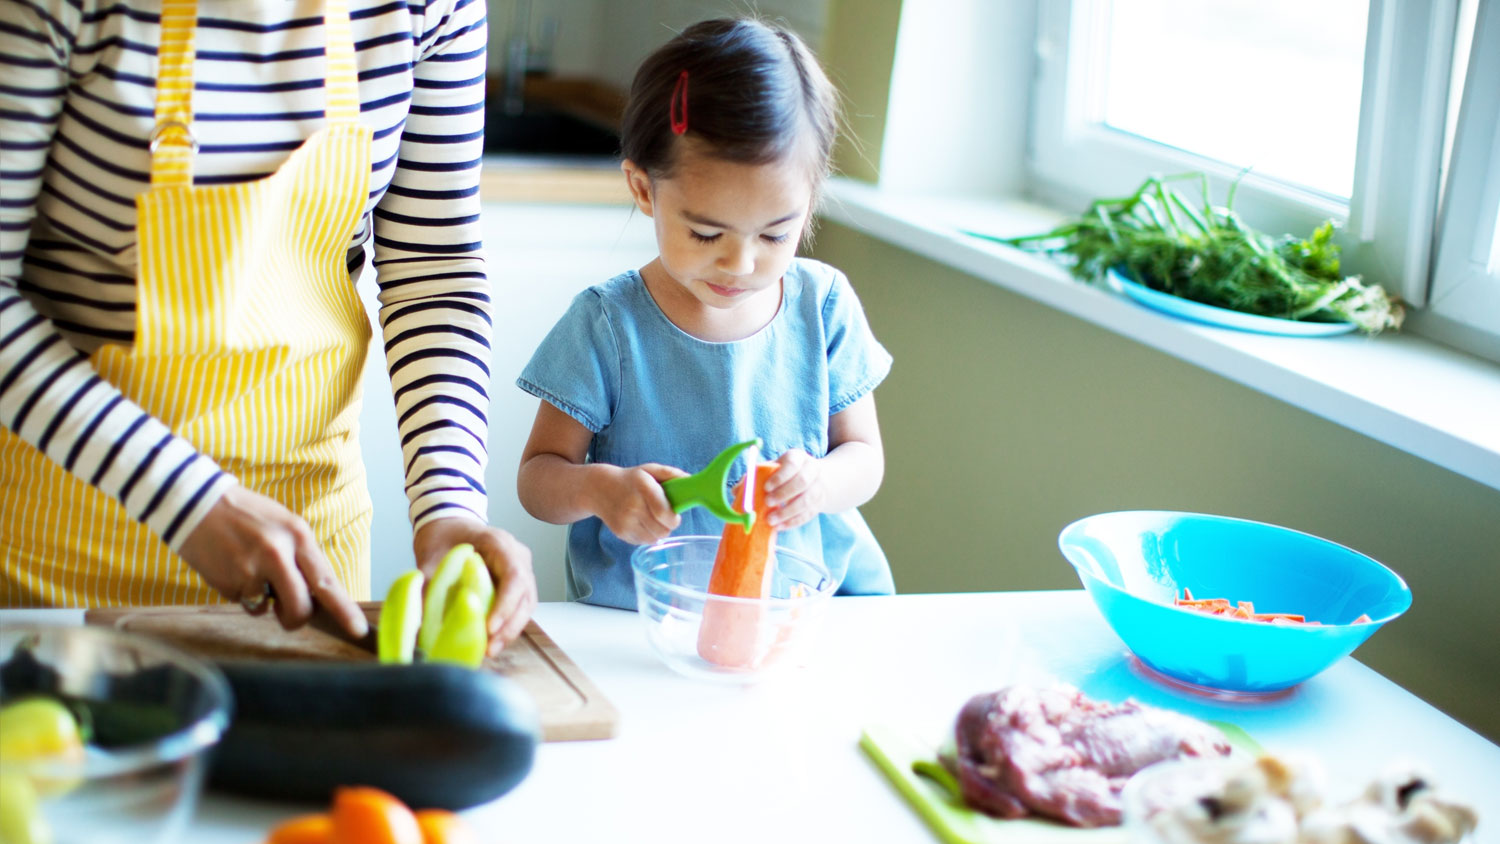 parents and children eating habits match